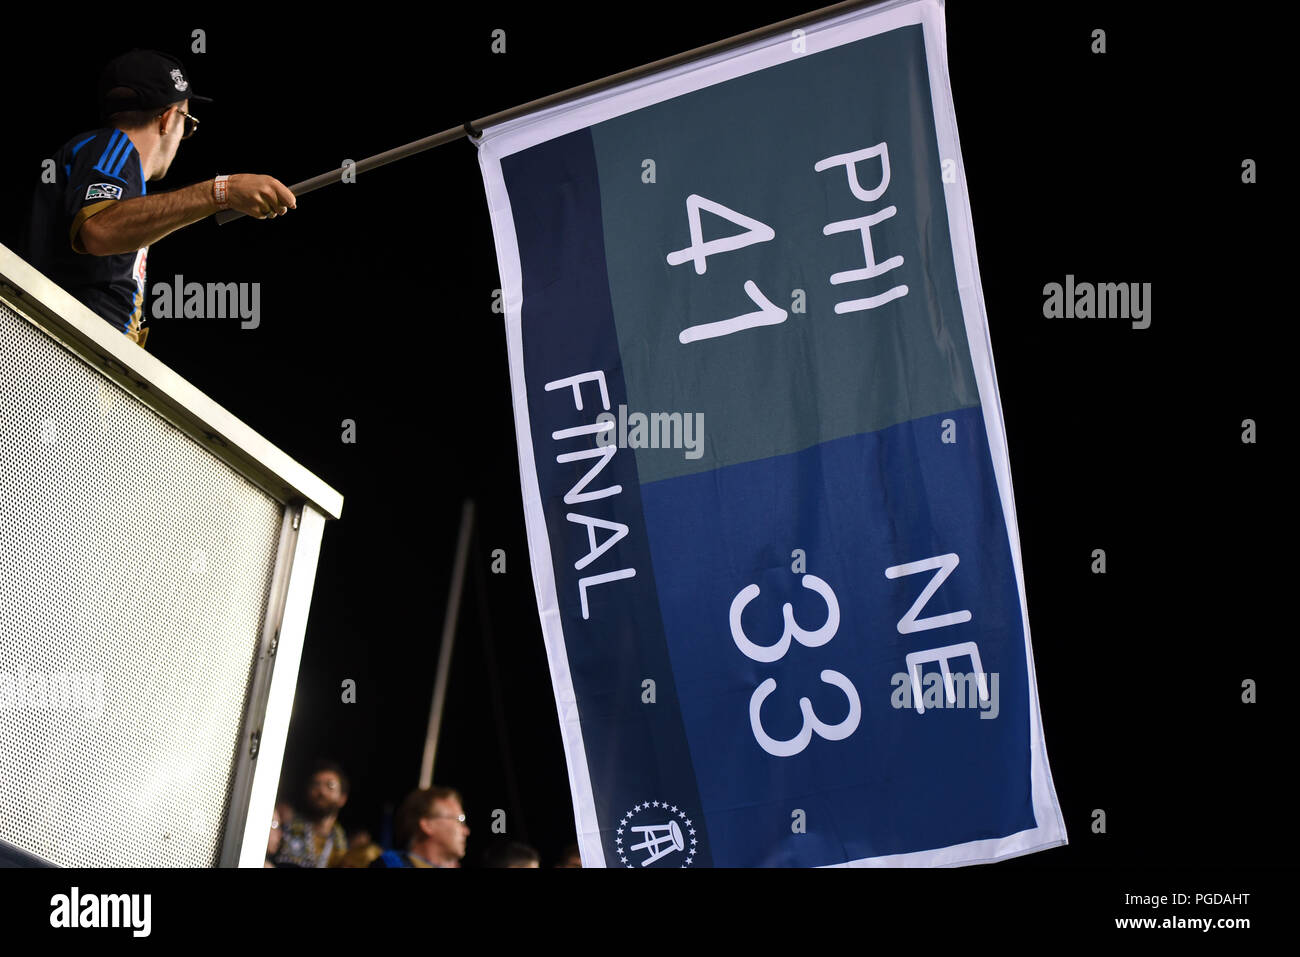 Chester, Pennsylvania, USA. 25th Aug, 2018. A Philadelphia Union fan reminds the New England Revolution players and fans of the final score of the superbowl between New England and the Philadelphia Eagles at Talen Energy Filed in Chester PA Credit: Ricky Fitchett/ZUMA Wire/Alamy Live News - Stock Image